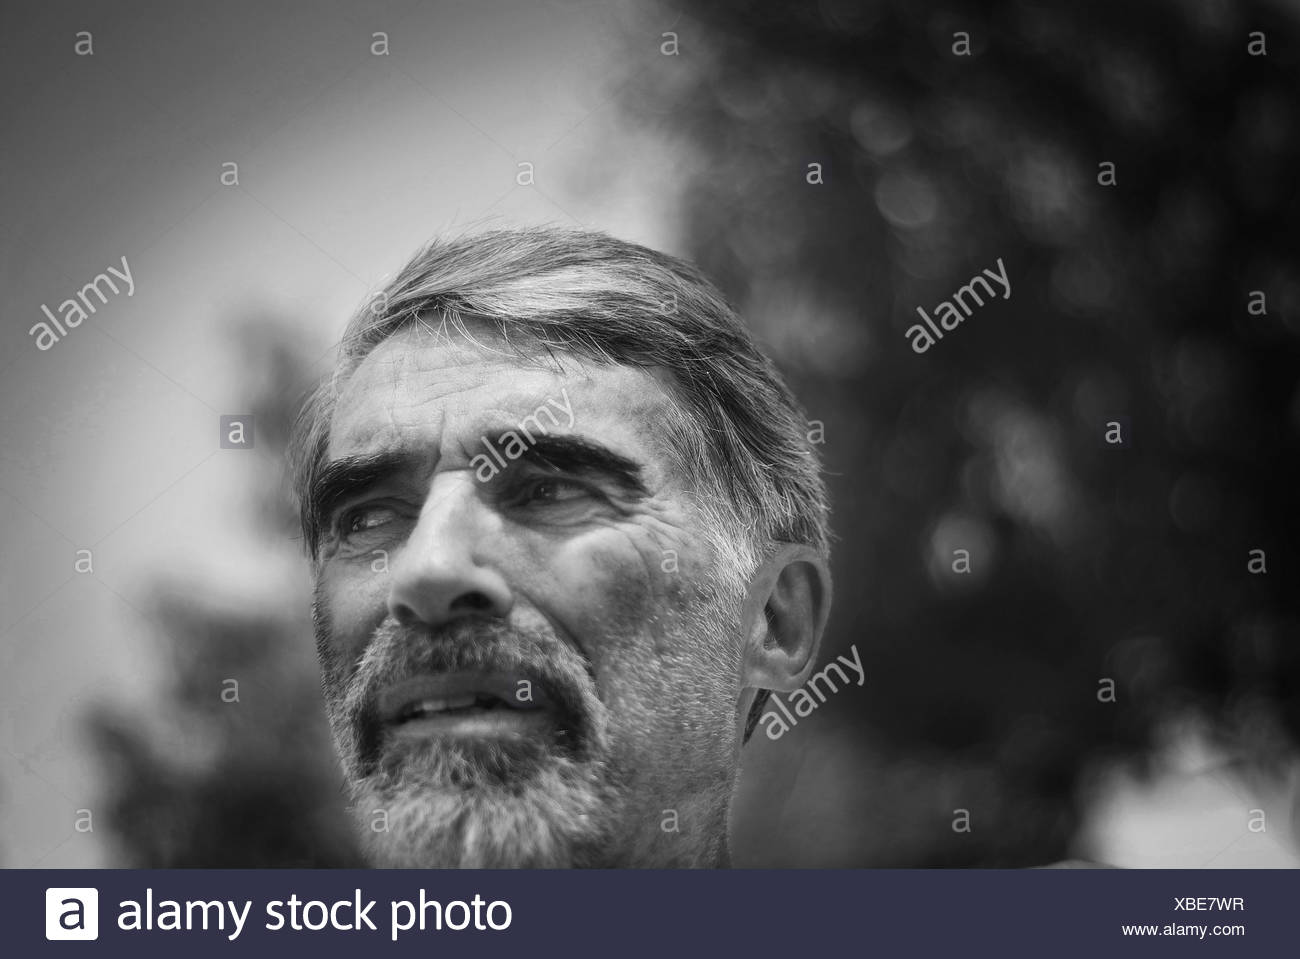 Pensive senior man looking off camera with a skeptical worried anxious look on his face - Stock Image